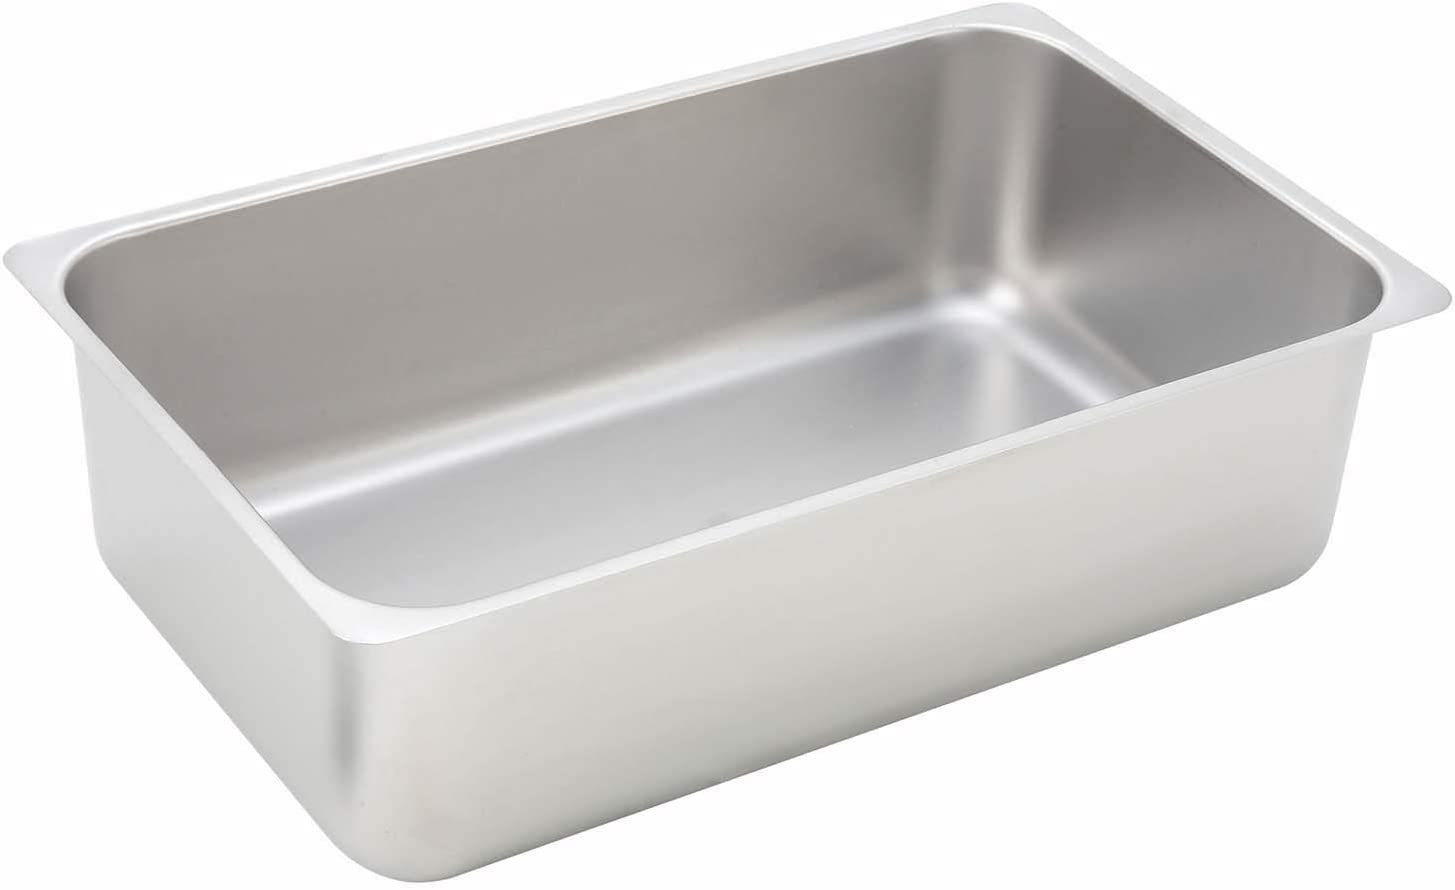 Winco 6-Inch Deep Stainless Steel Spillage Pan, Full Size